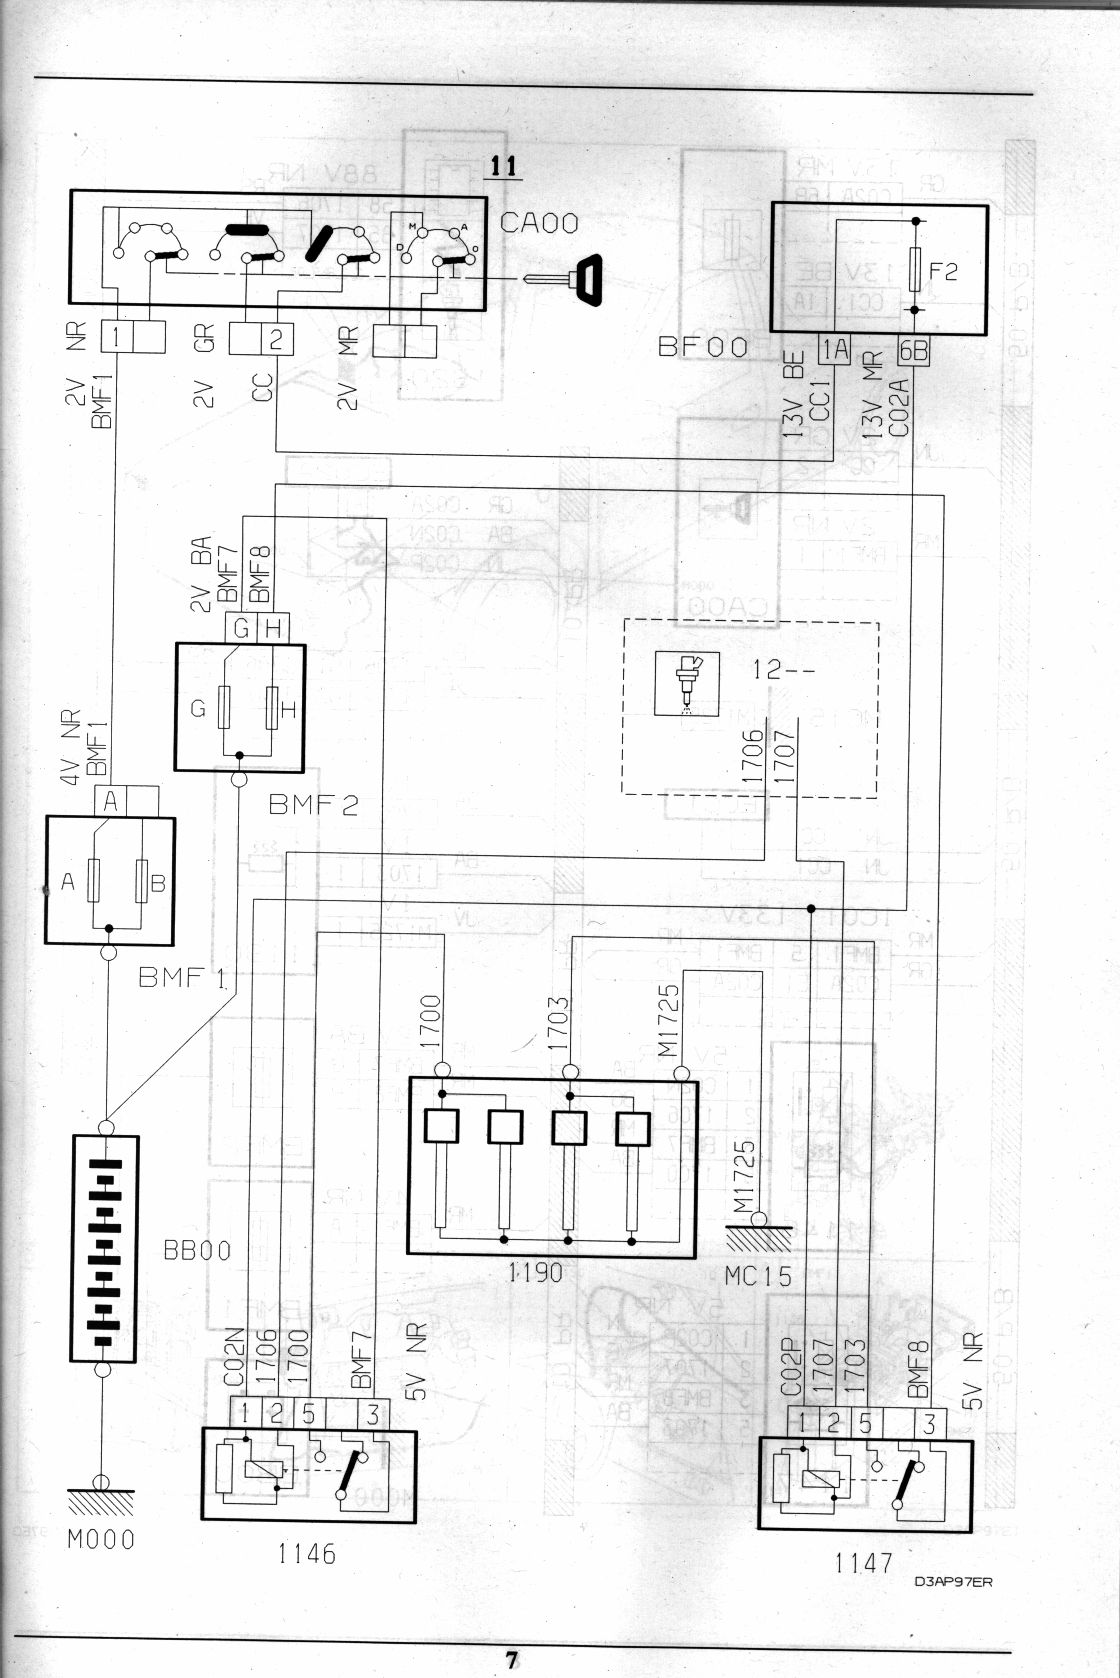 Electrical Wiring: Citroen Xsara Electrical Wiring Diagram